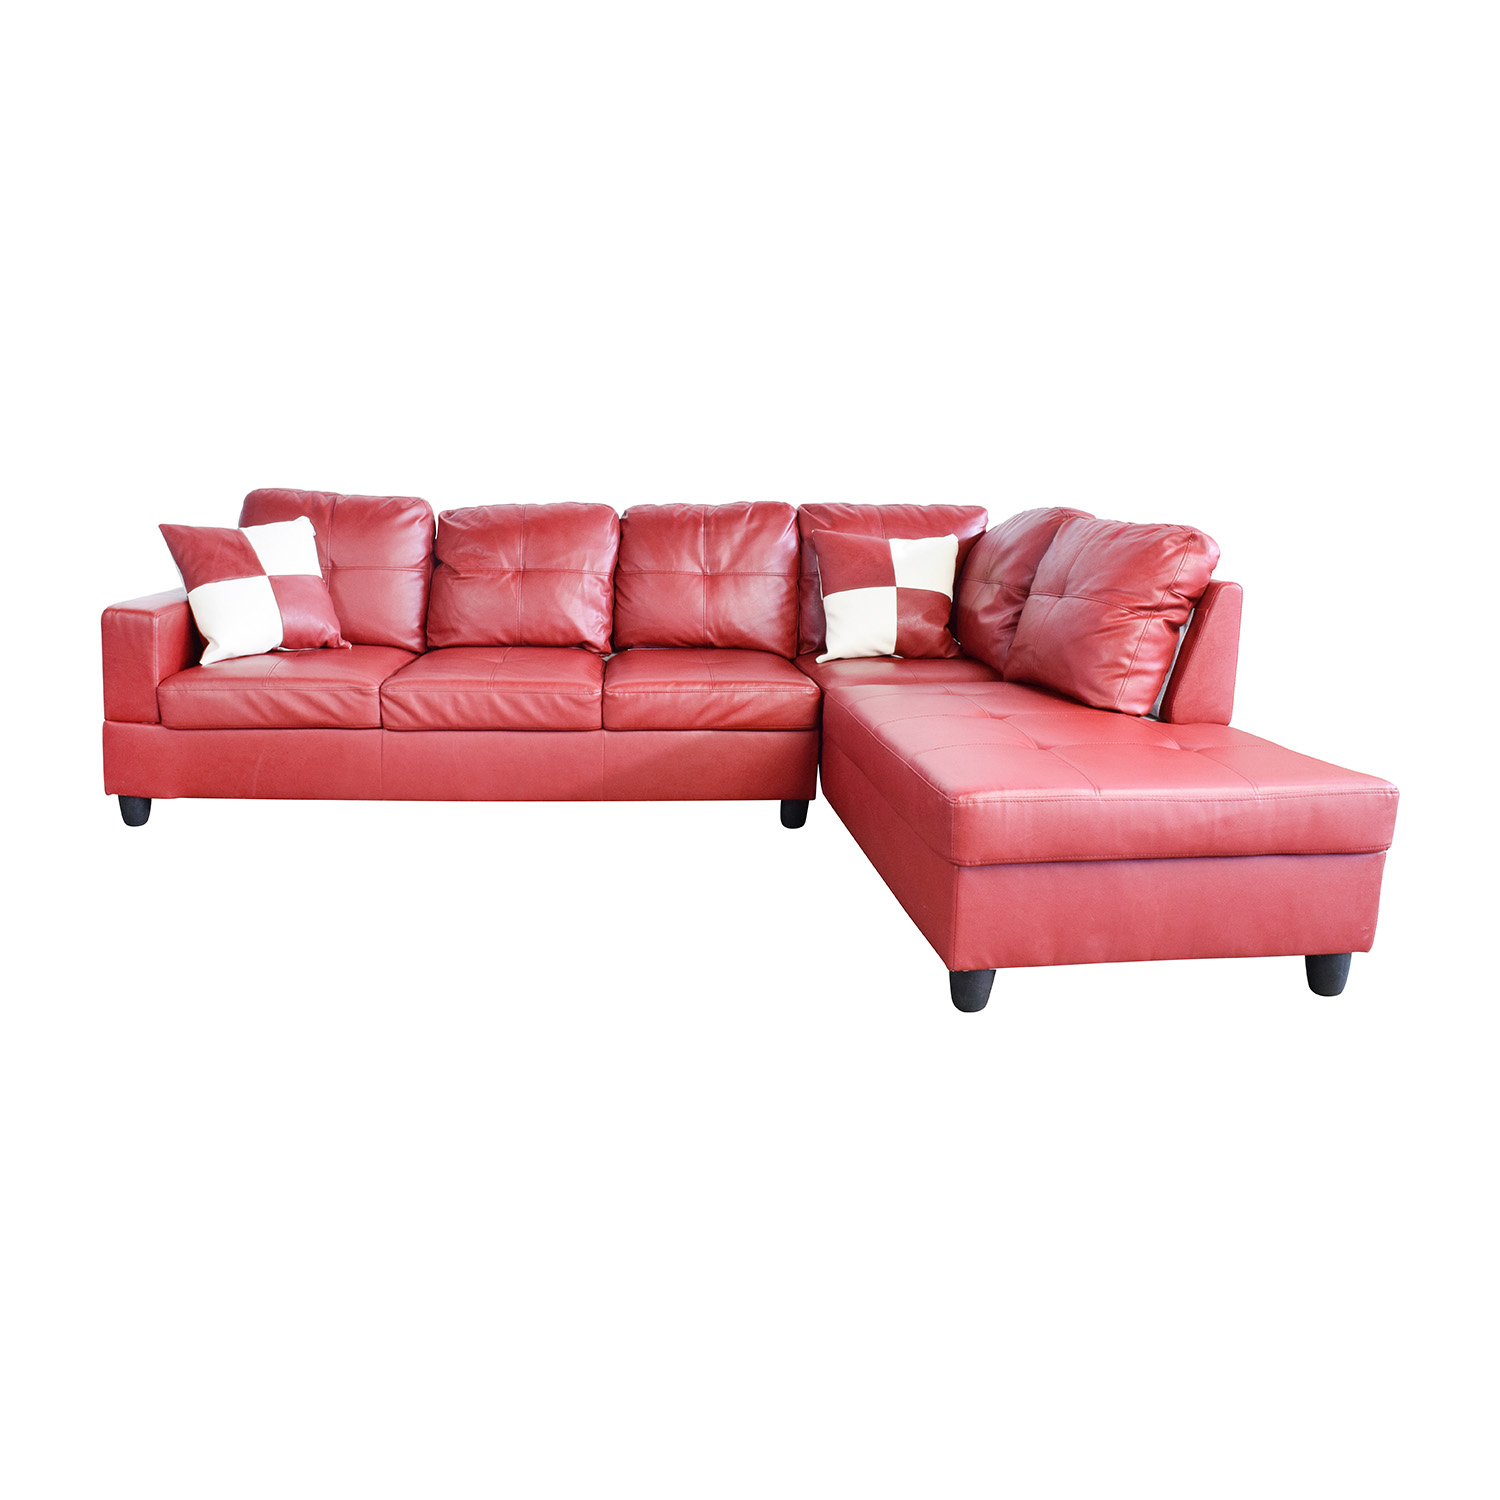 Beverly red faux leather sectional sofa with ottoman for Red leather sectional sofa with ottoman